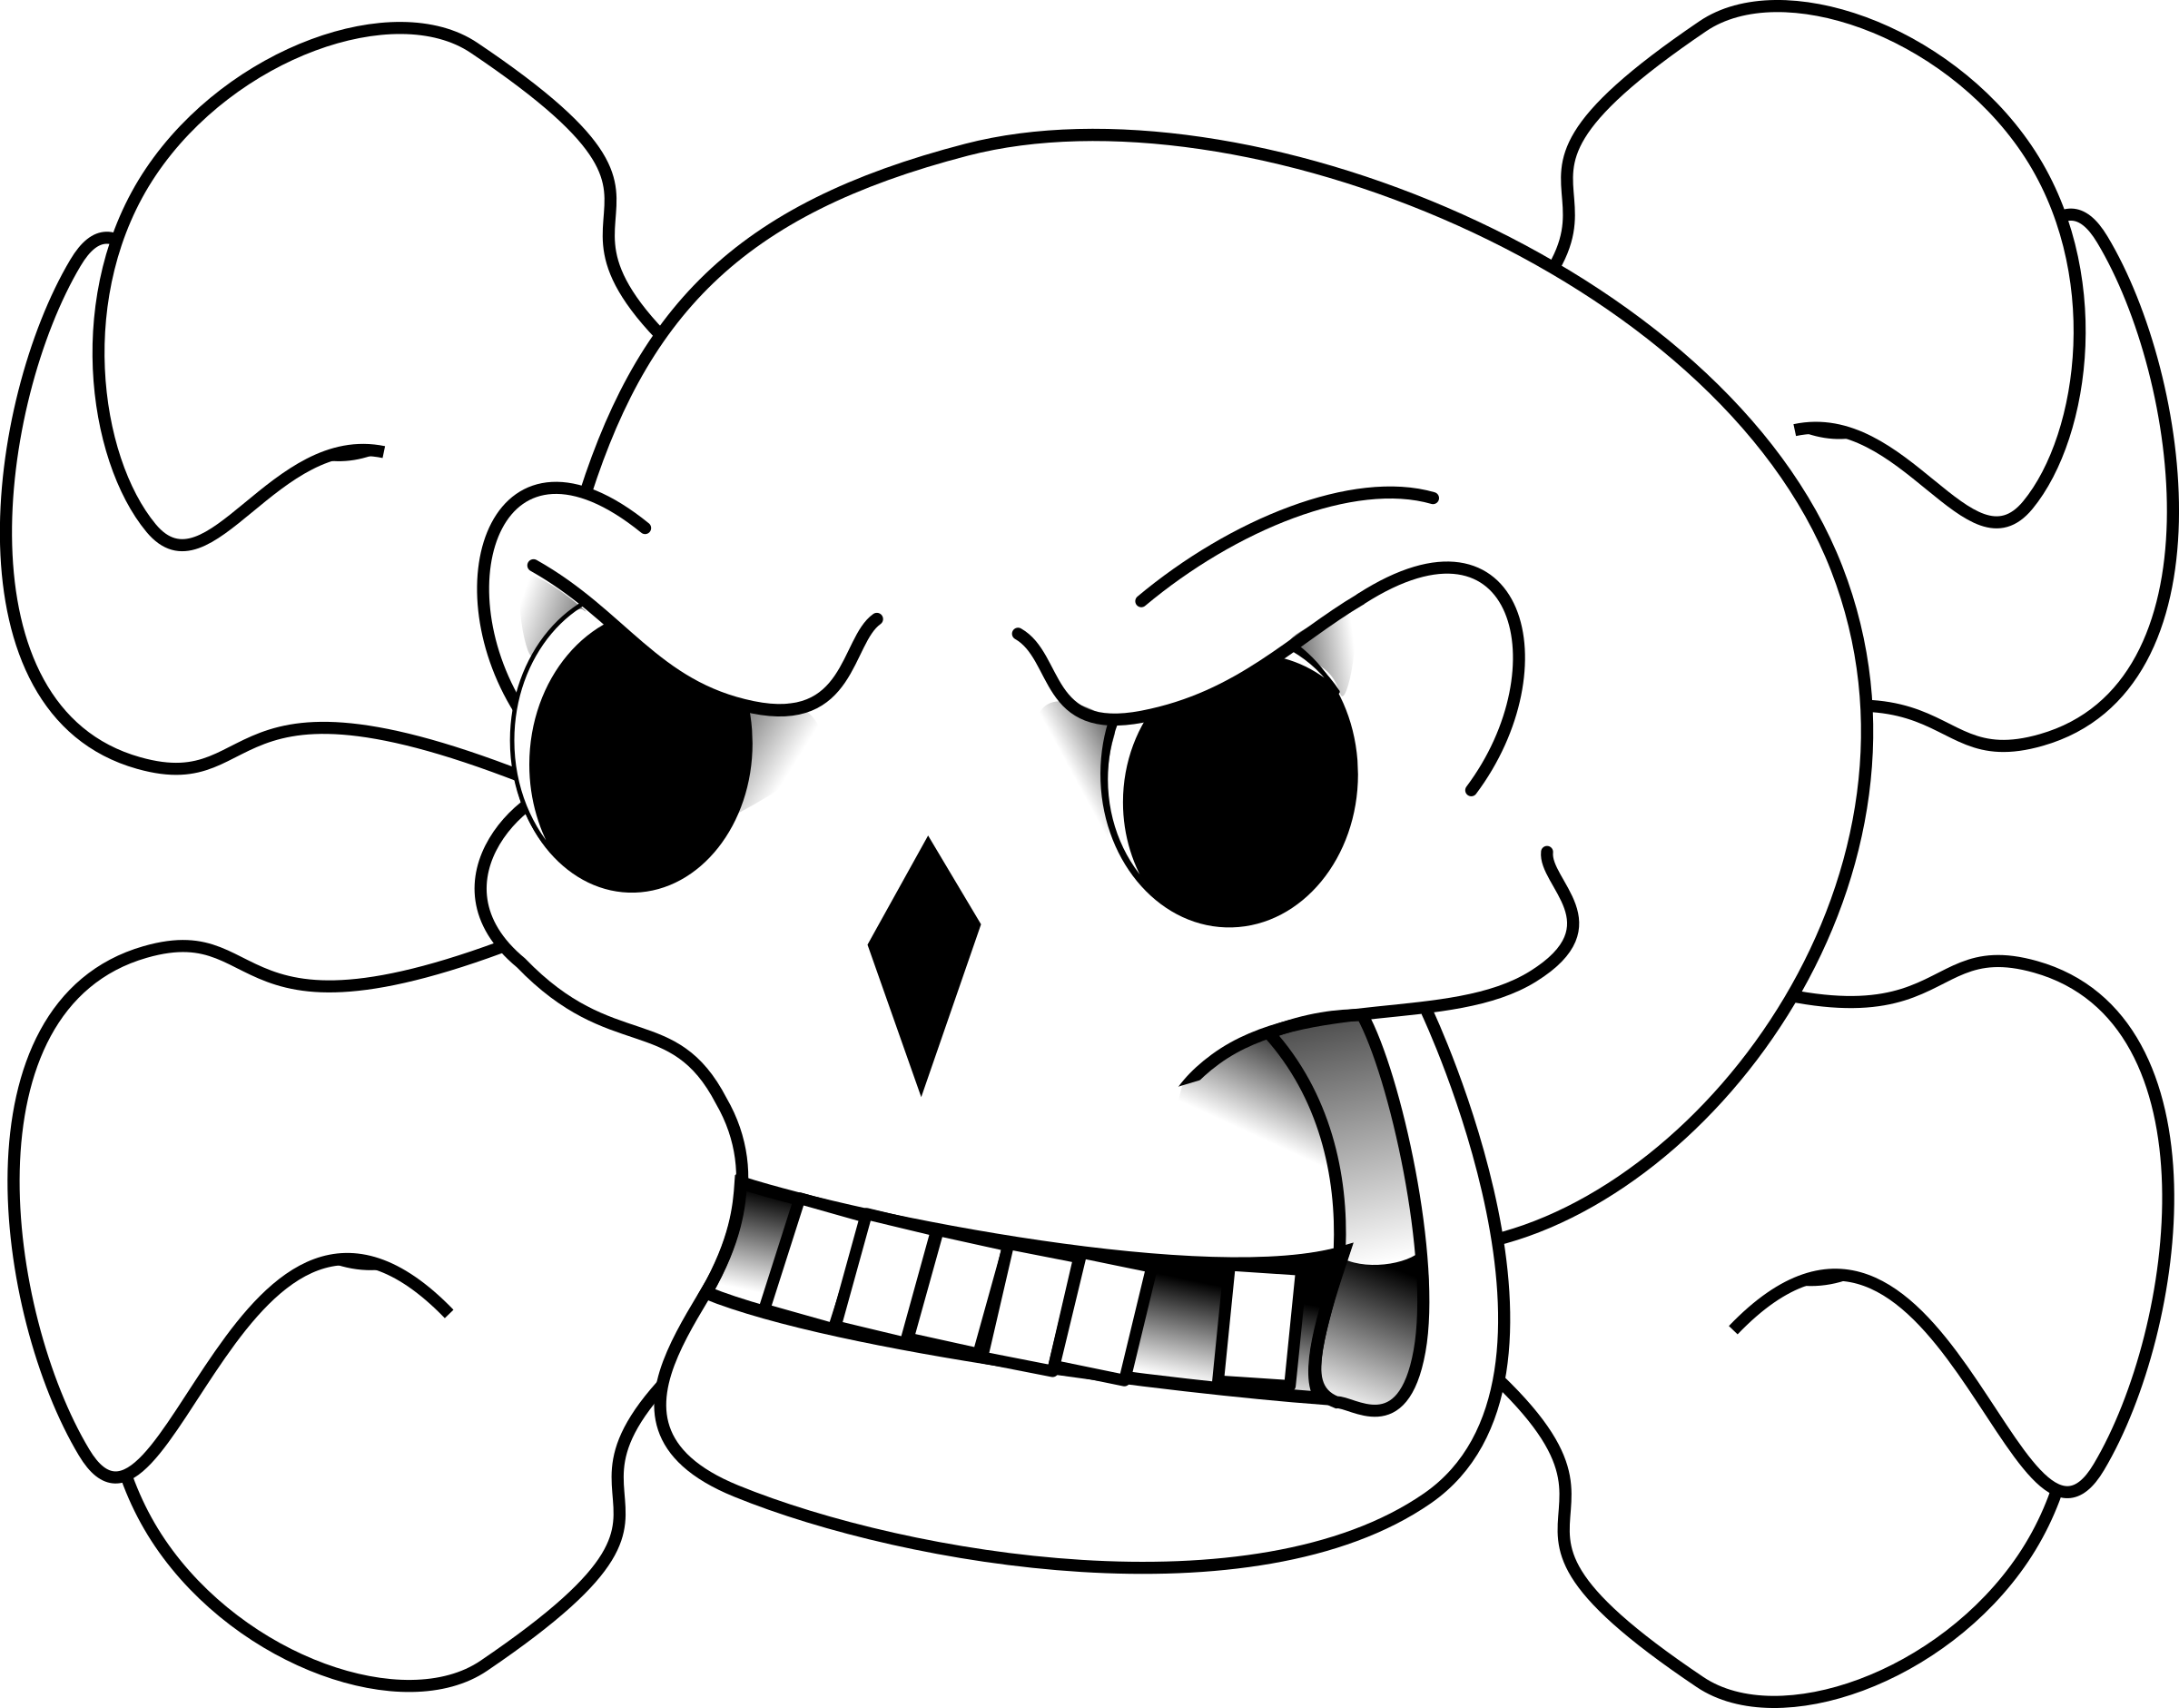 Skull and Bones by drunken_duck